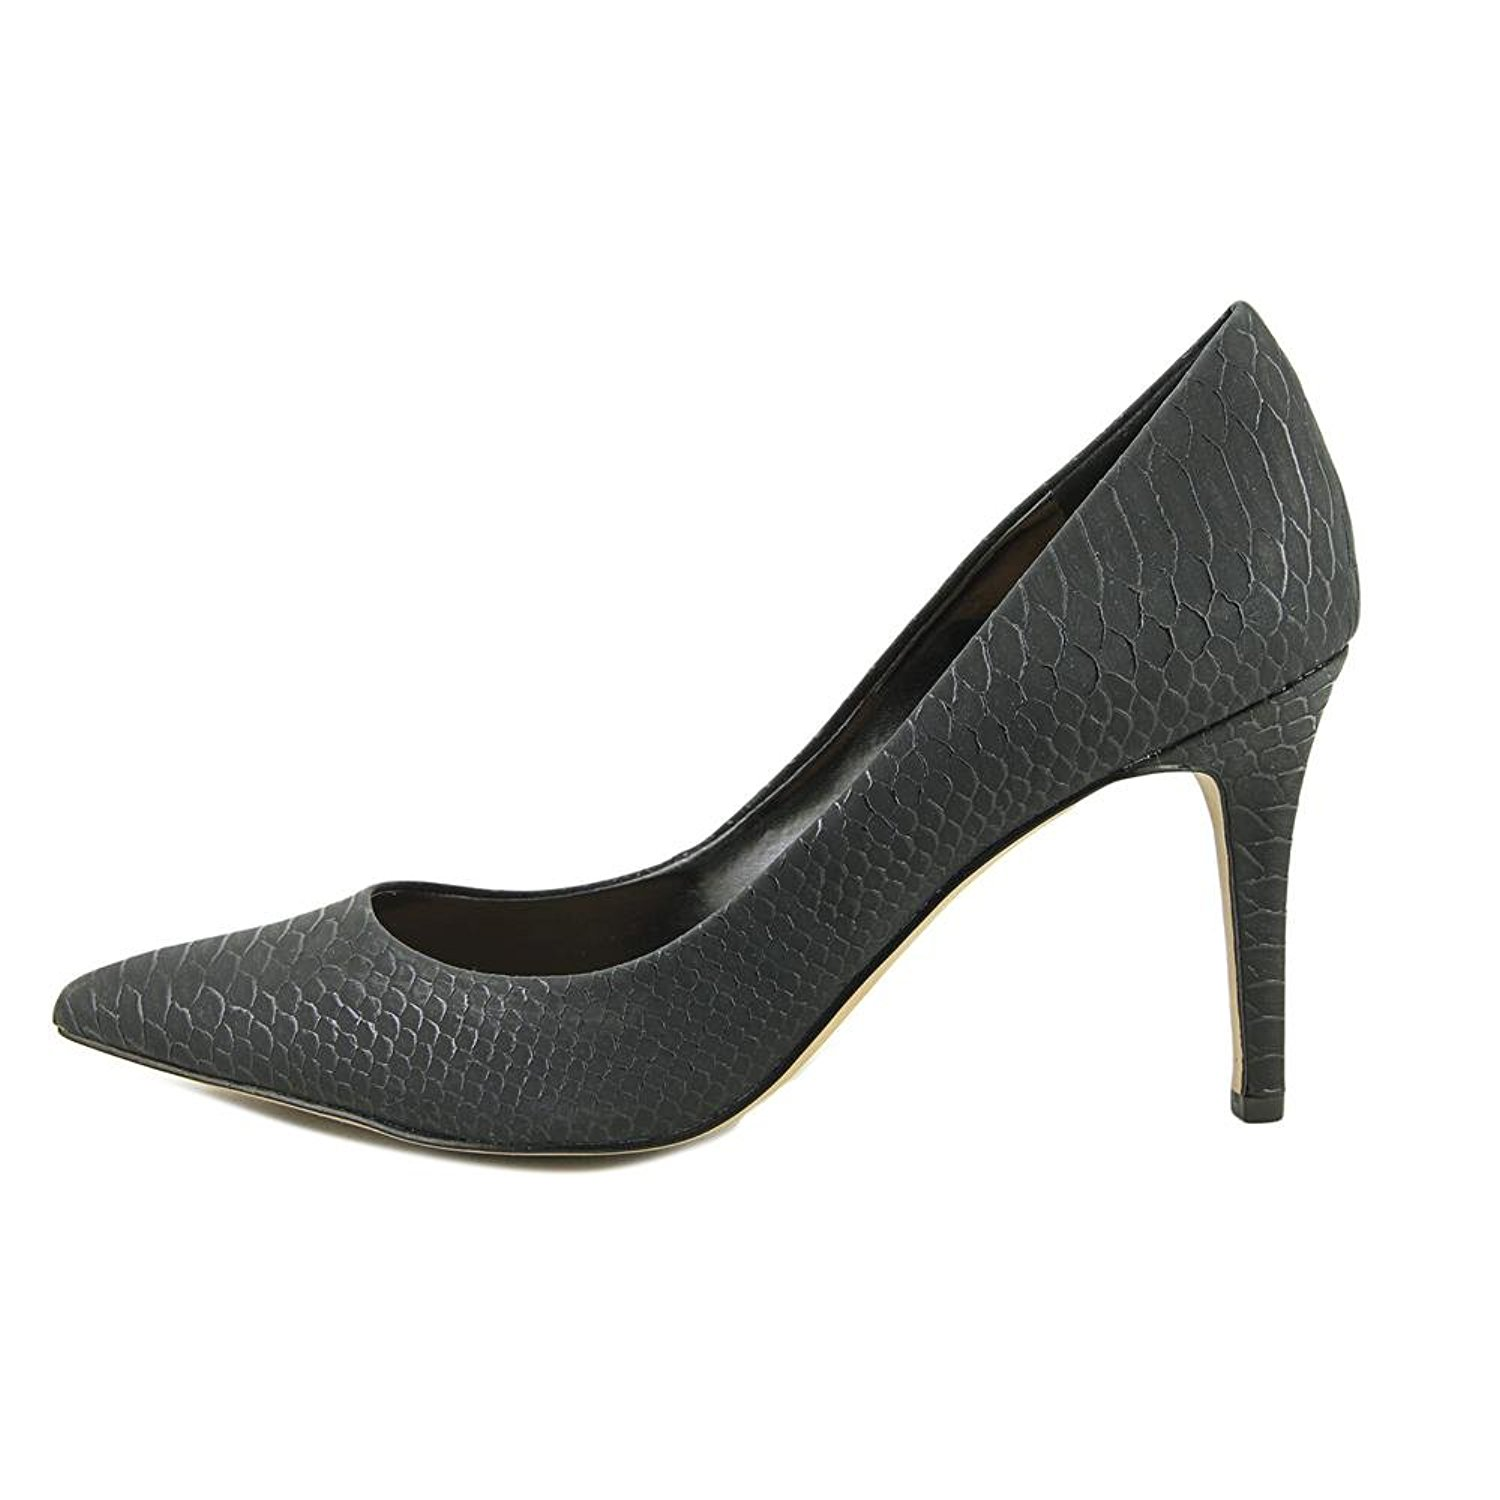 Jessica Simpson Womens Levin Pointed Toe Classic Pumps, Black, Size 8.5 uYib